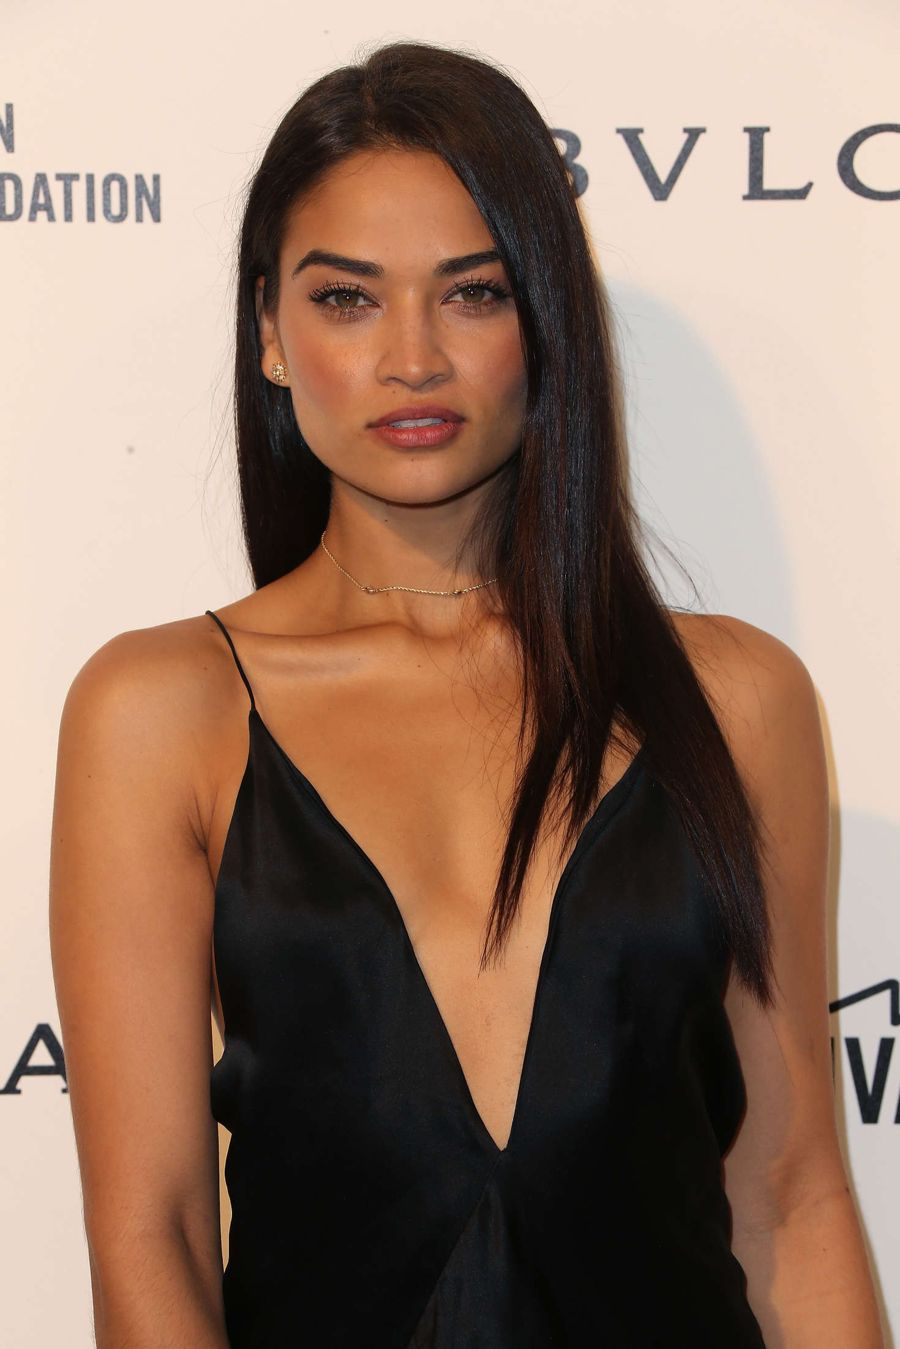 Shanina Shaik - 2016 AIDS Foundation's Oscar Party